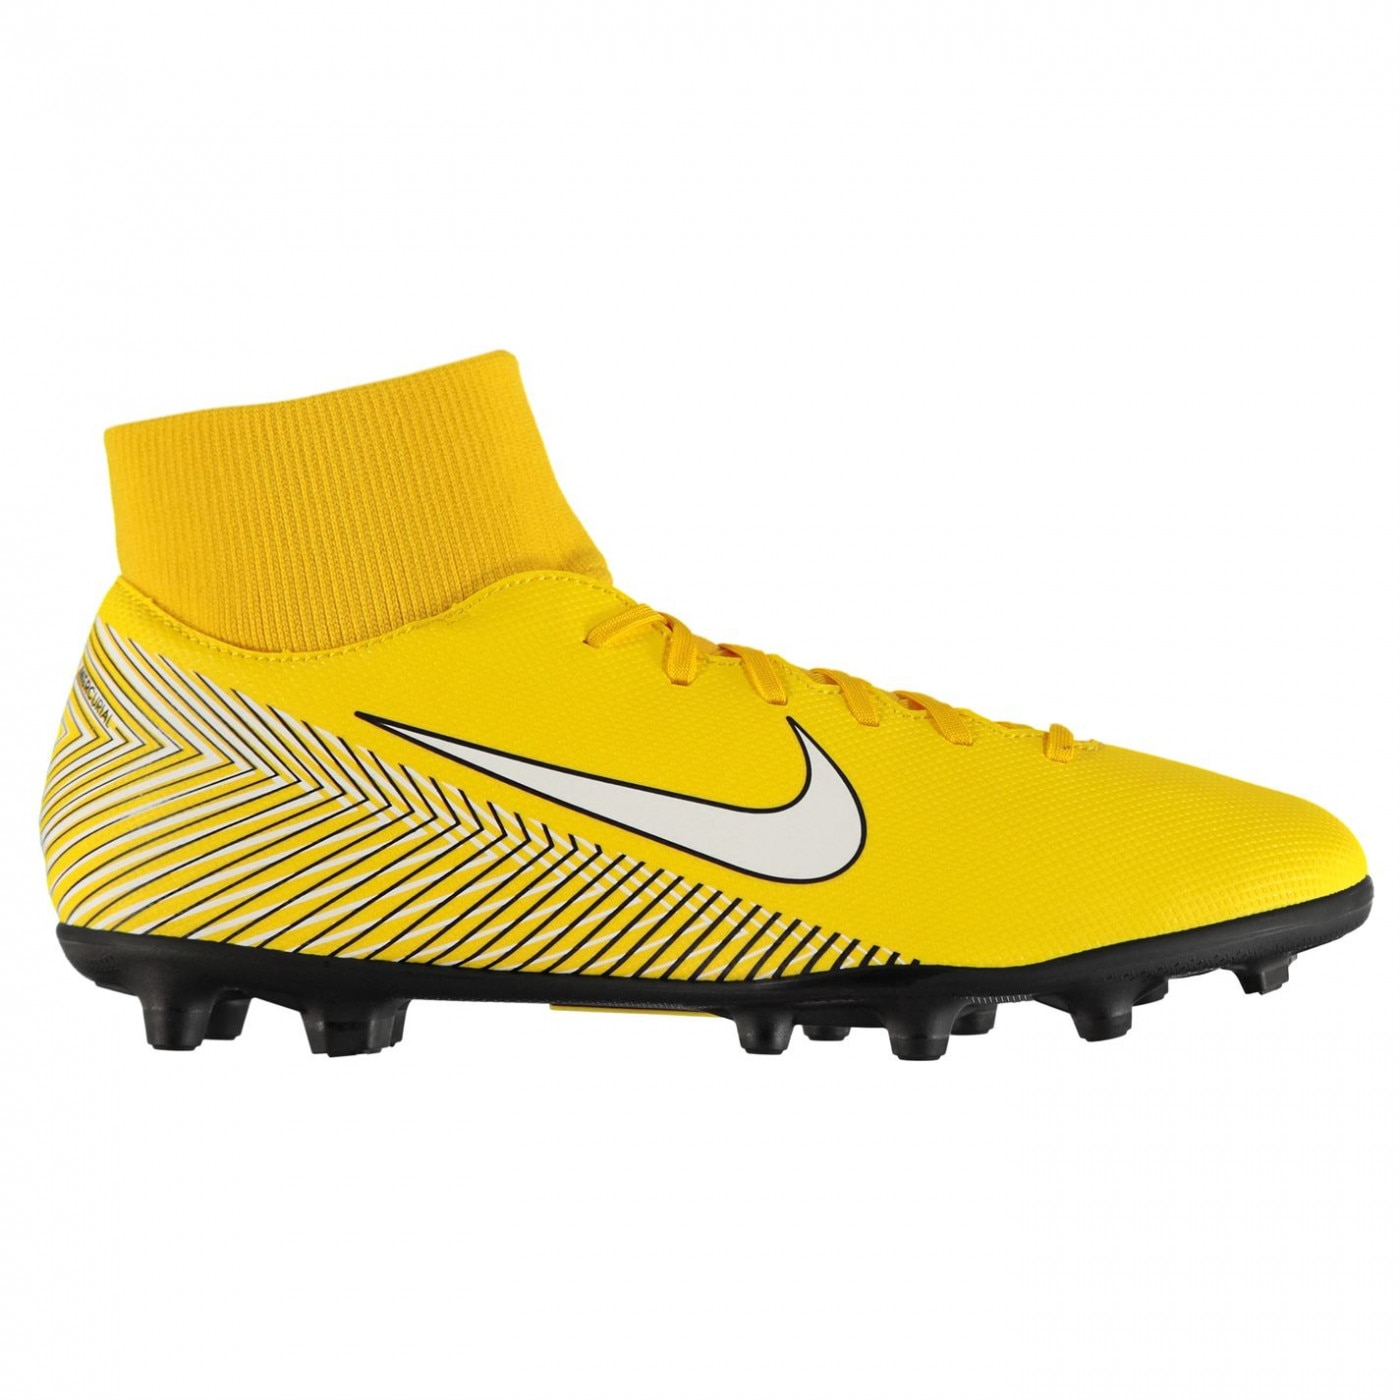 863d3cb2513 Nike Mercurial Superfly Club Neymar Jr DF Mens FG Football Boots ...